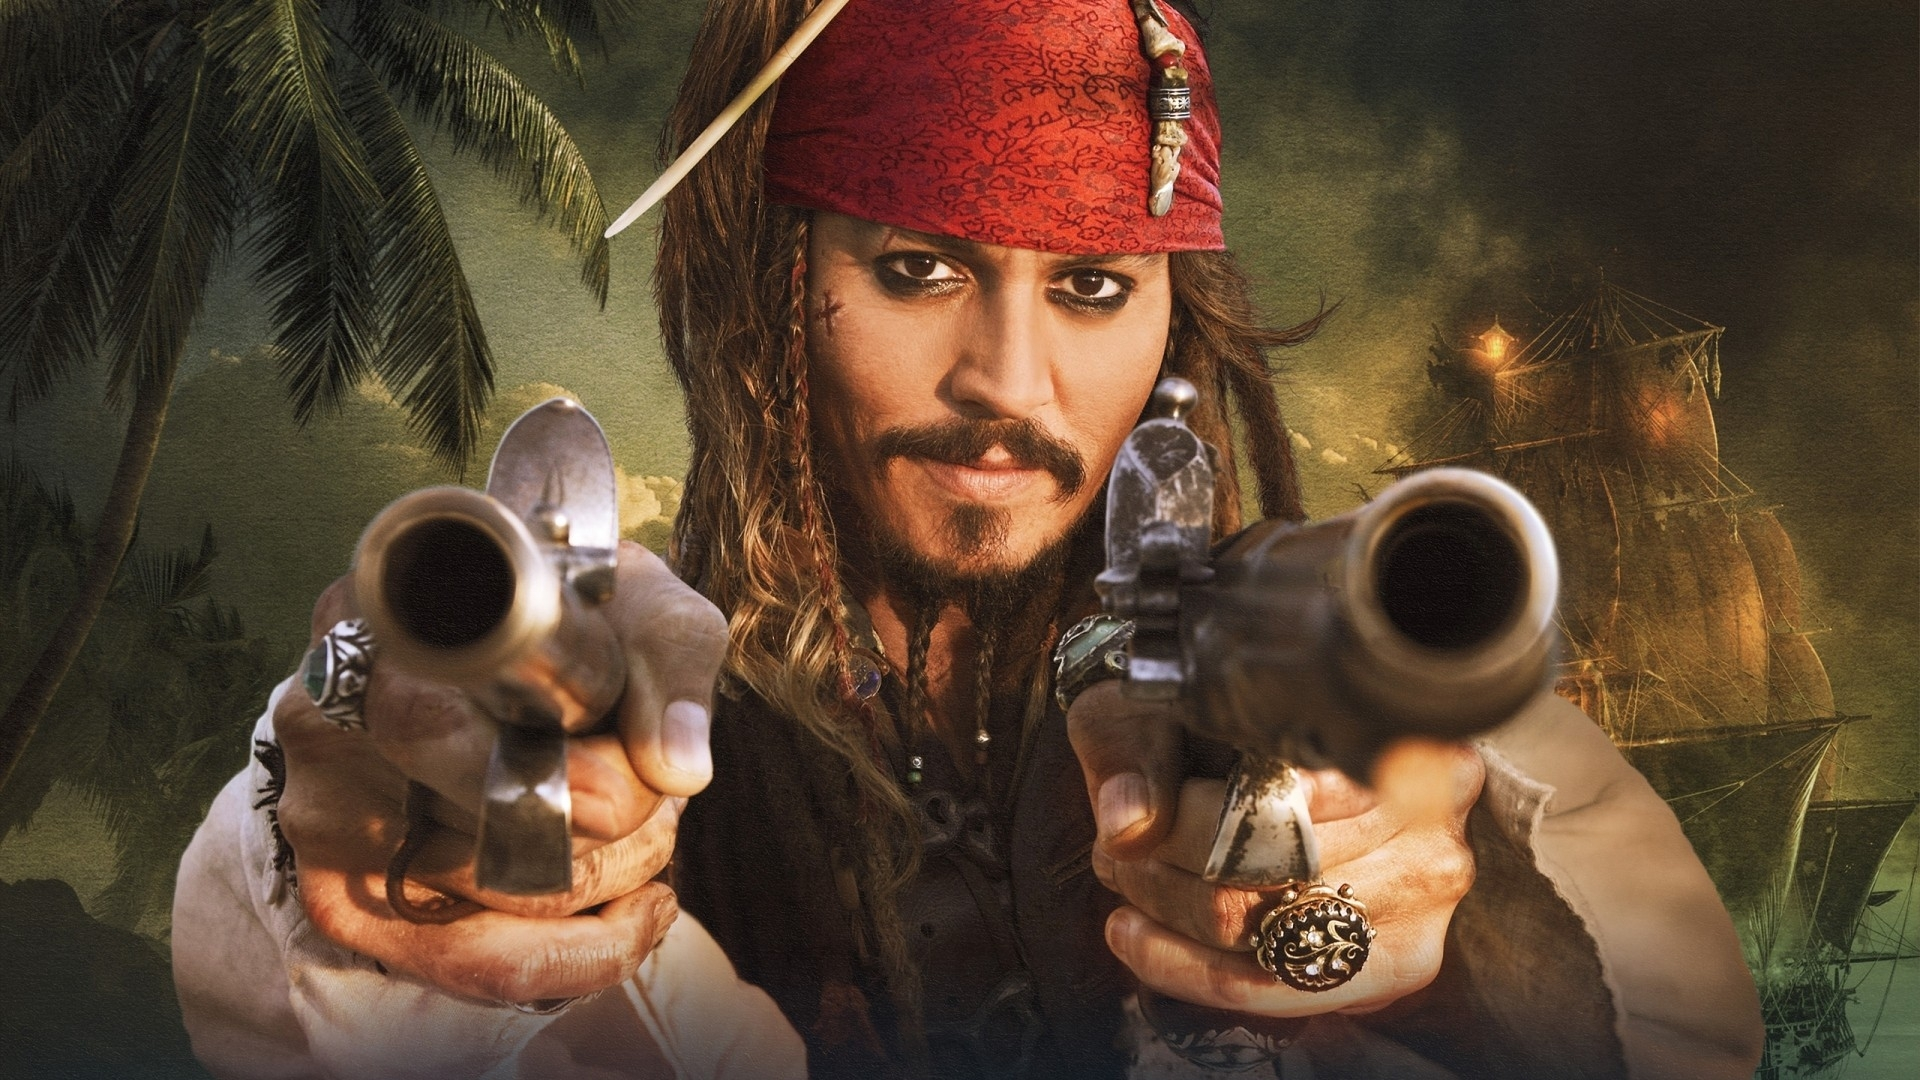 Pirates of the carabian naked wallpaper sex movies